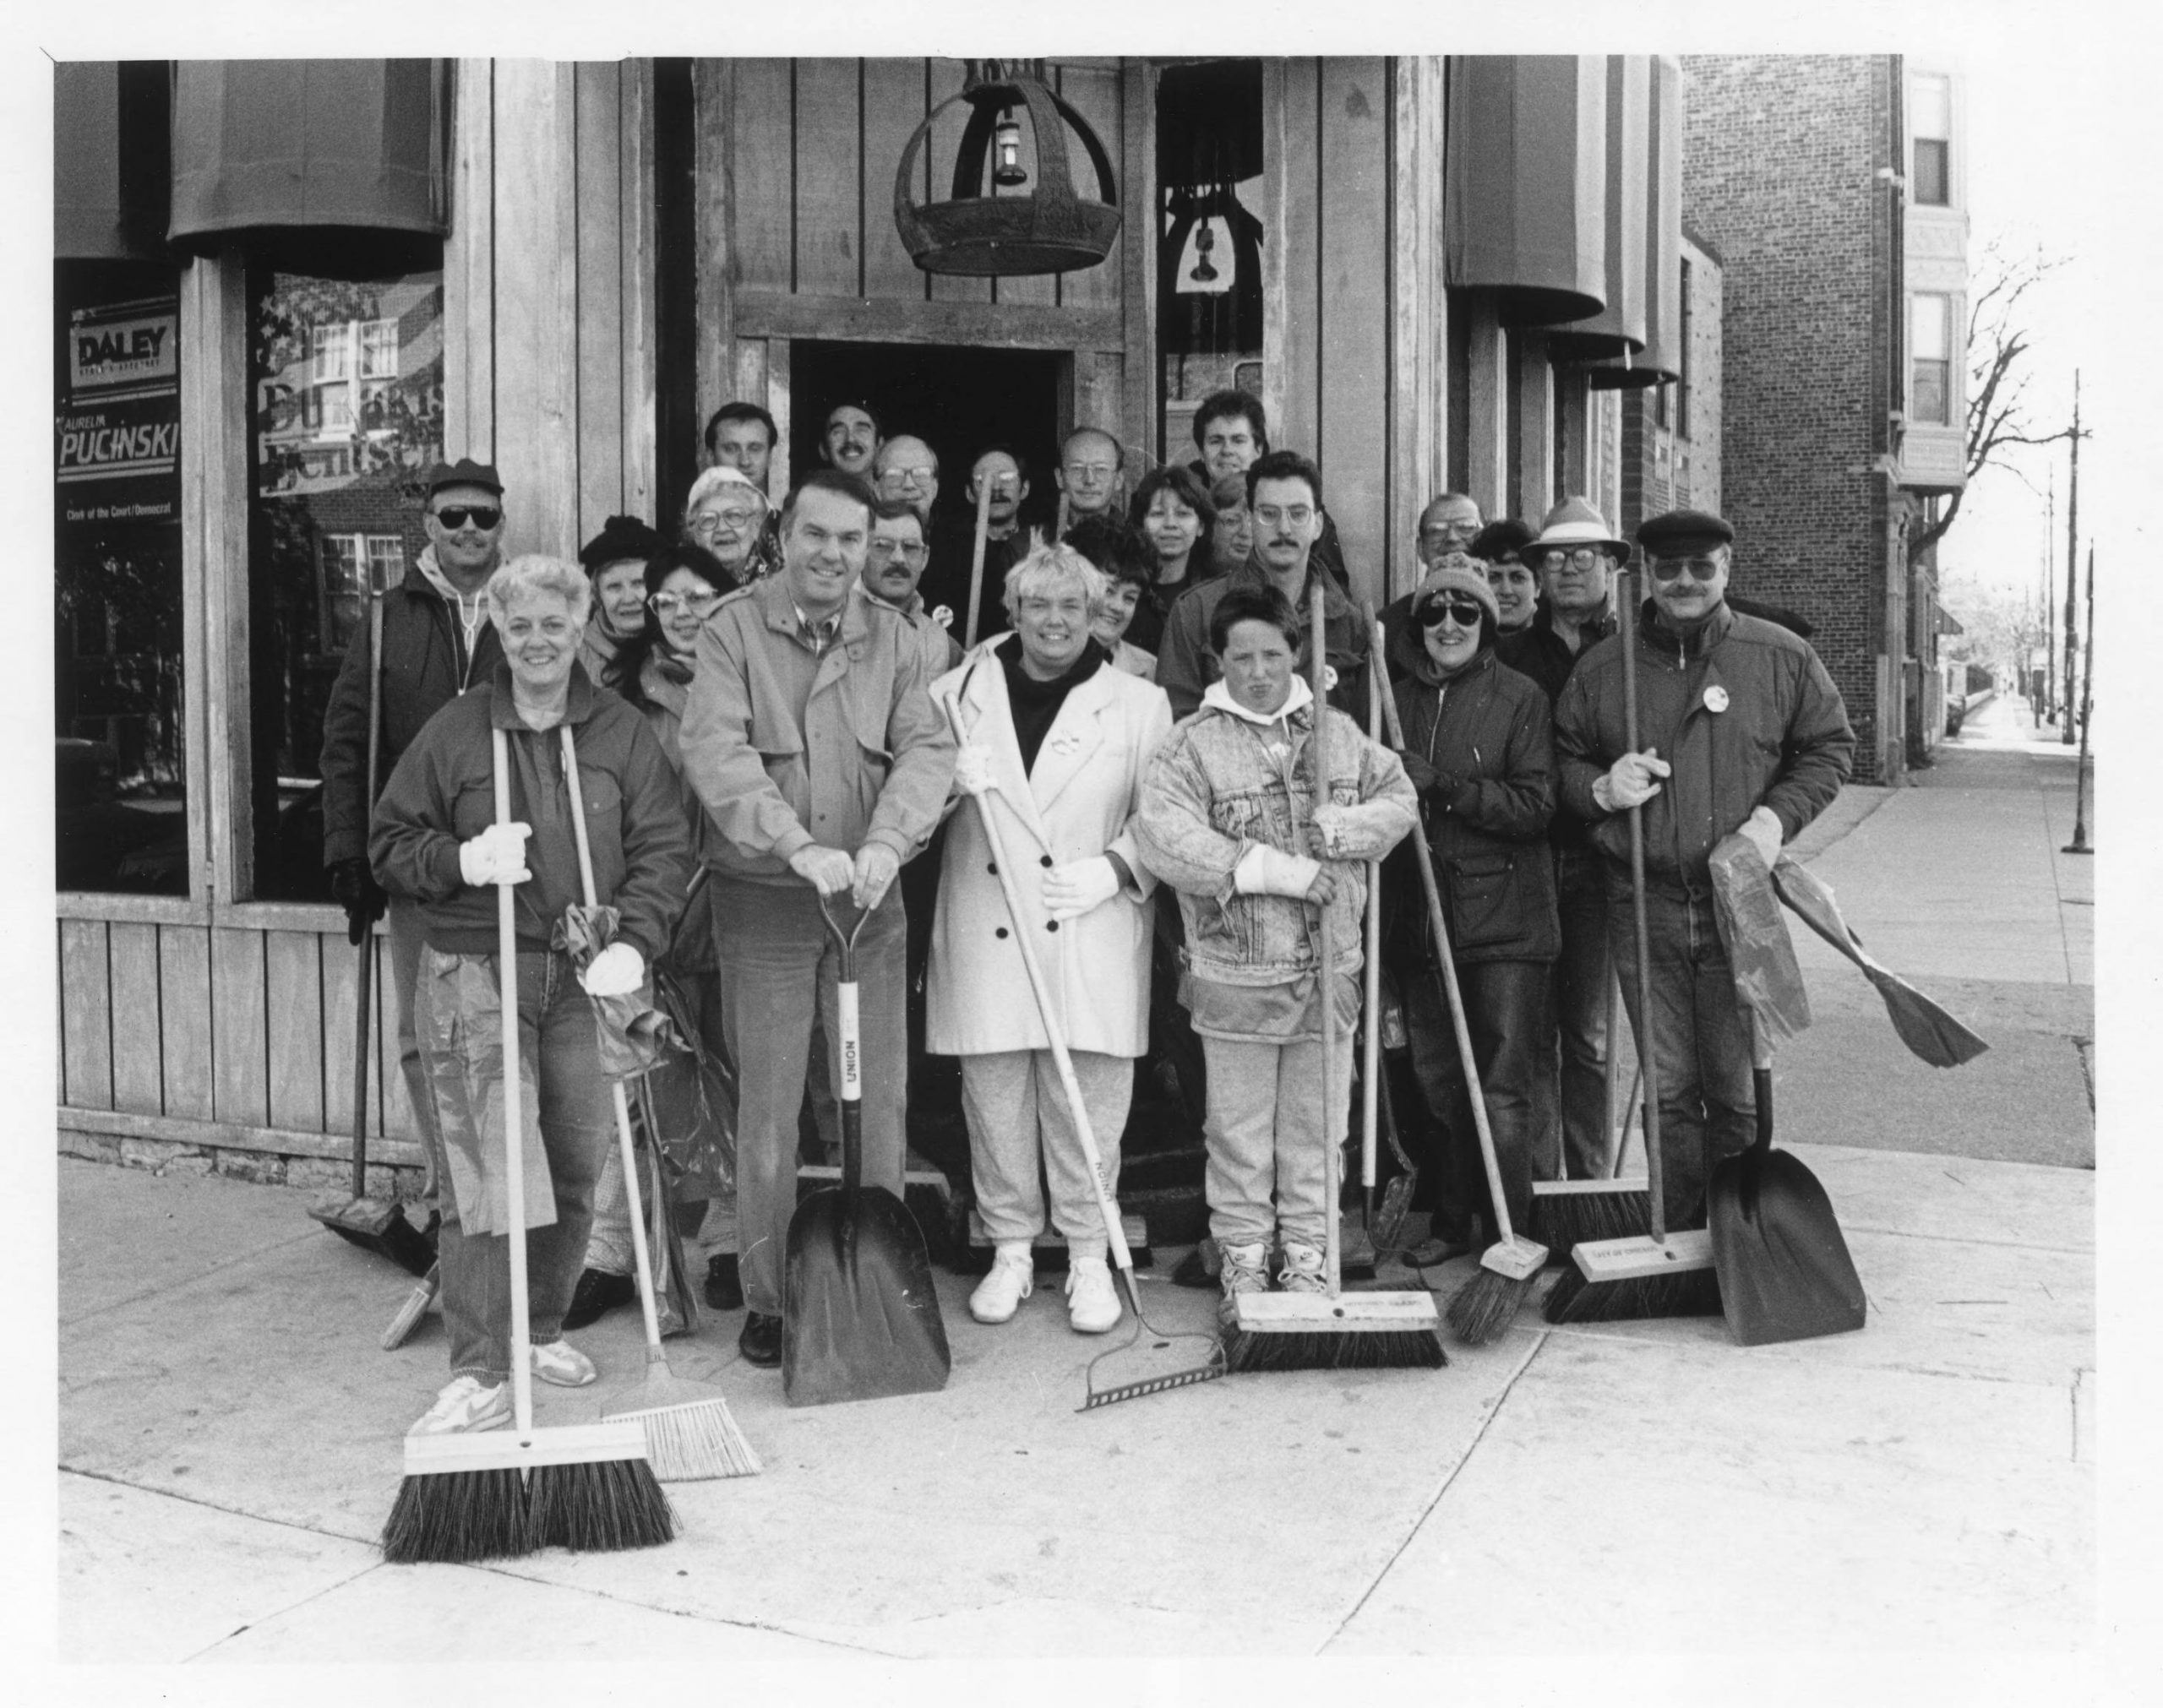 People with shovels and brooms in front of business